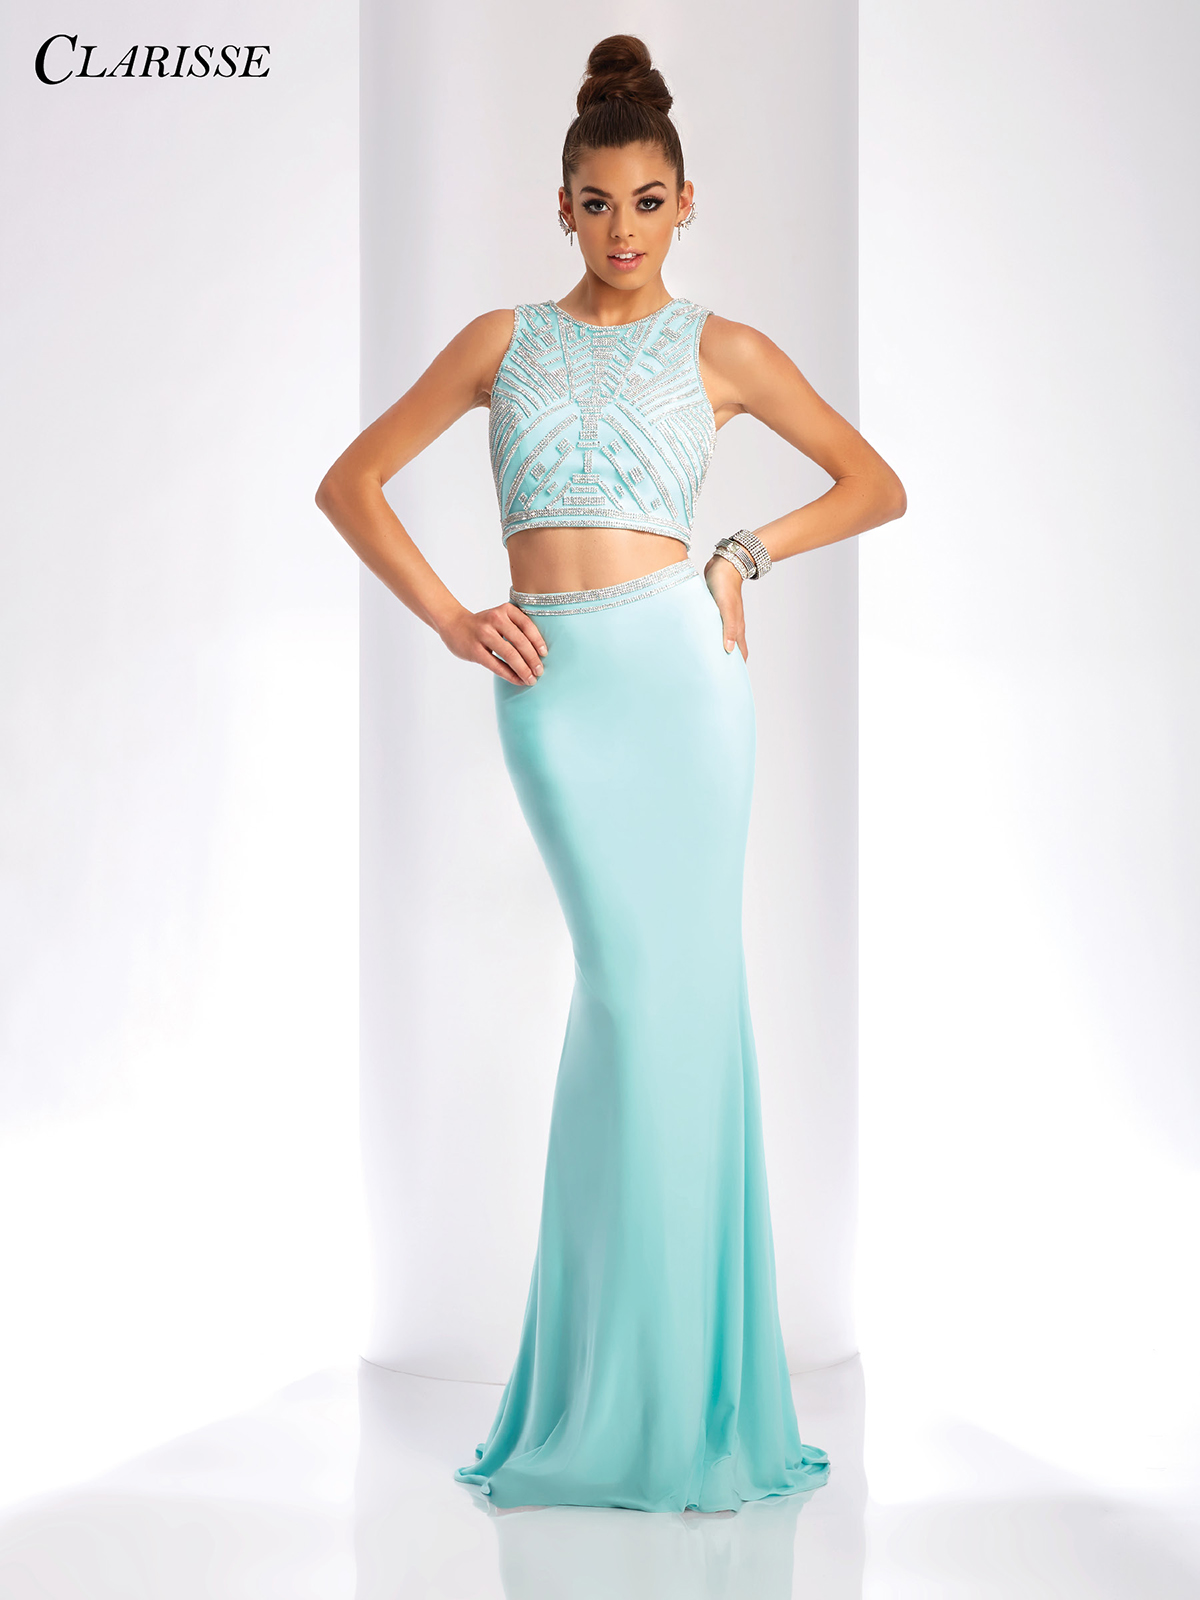 2018 Prom Dress Clarisse 3438 | Promgirl.net